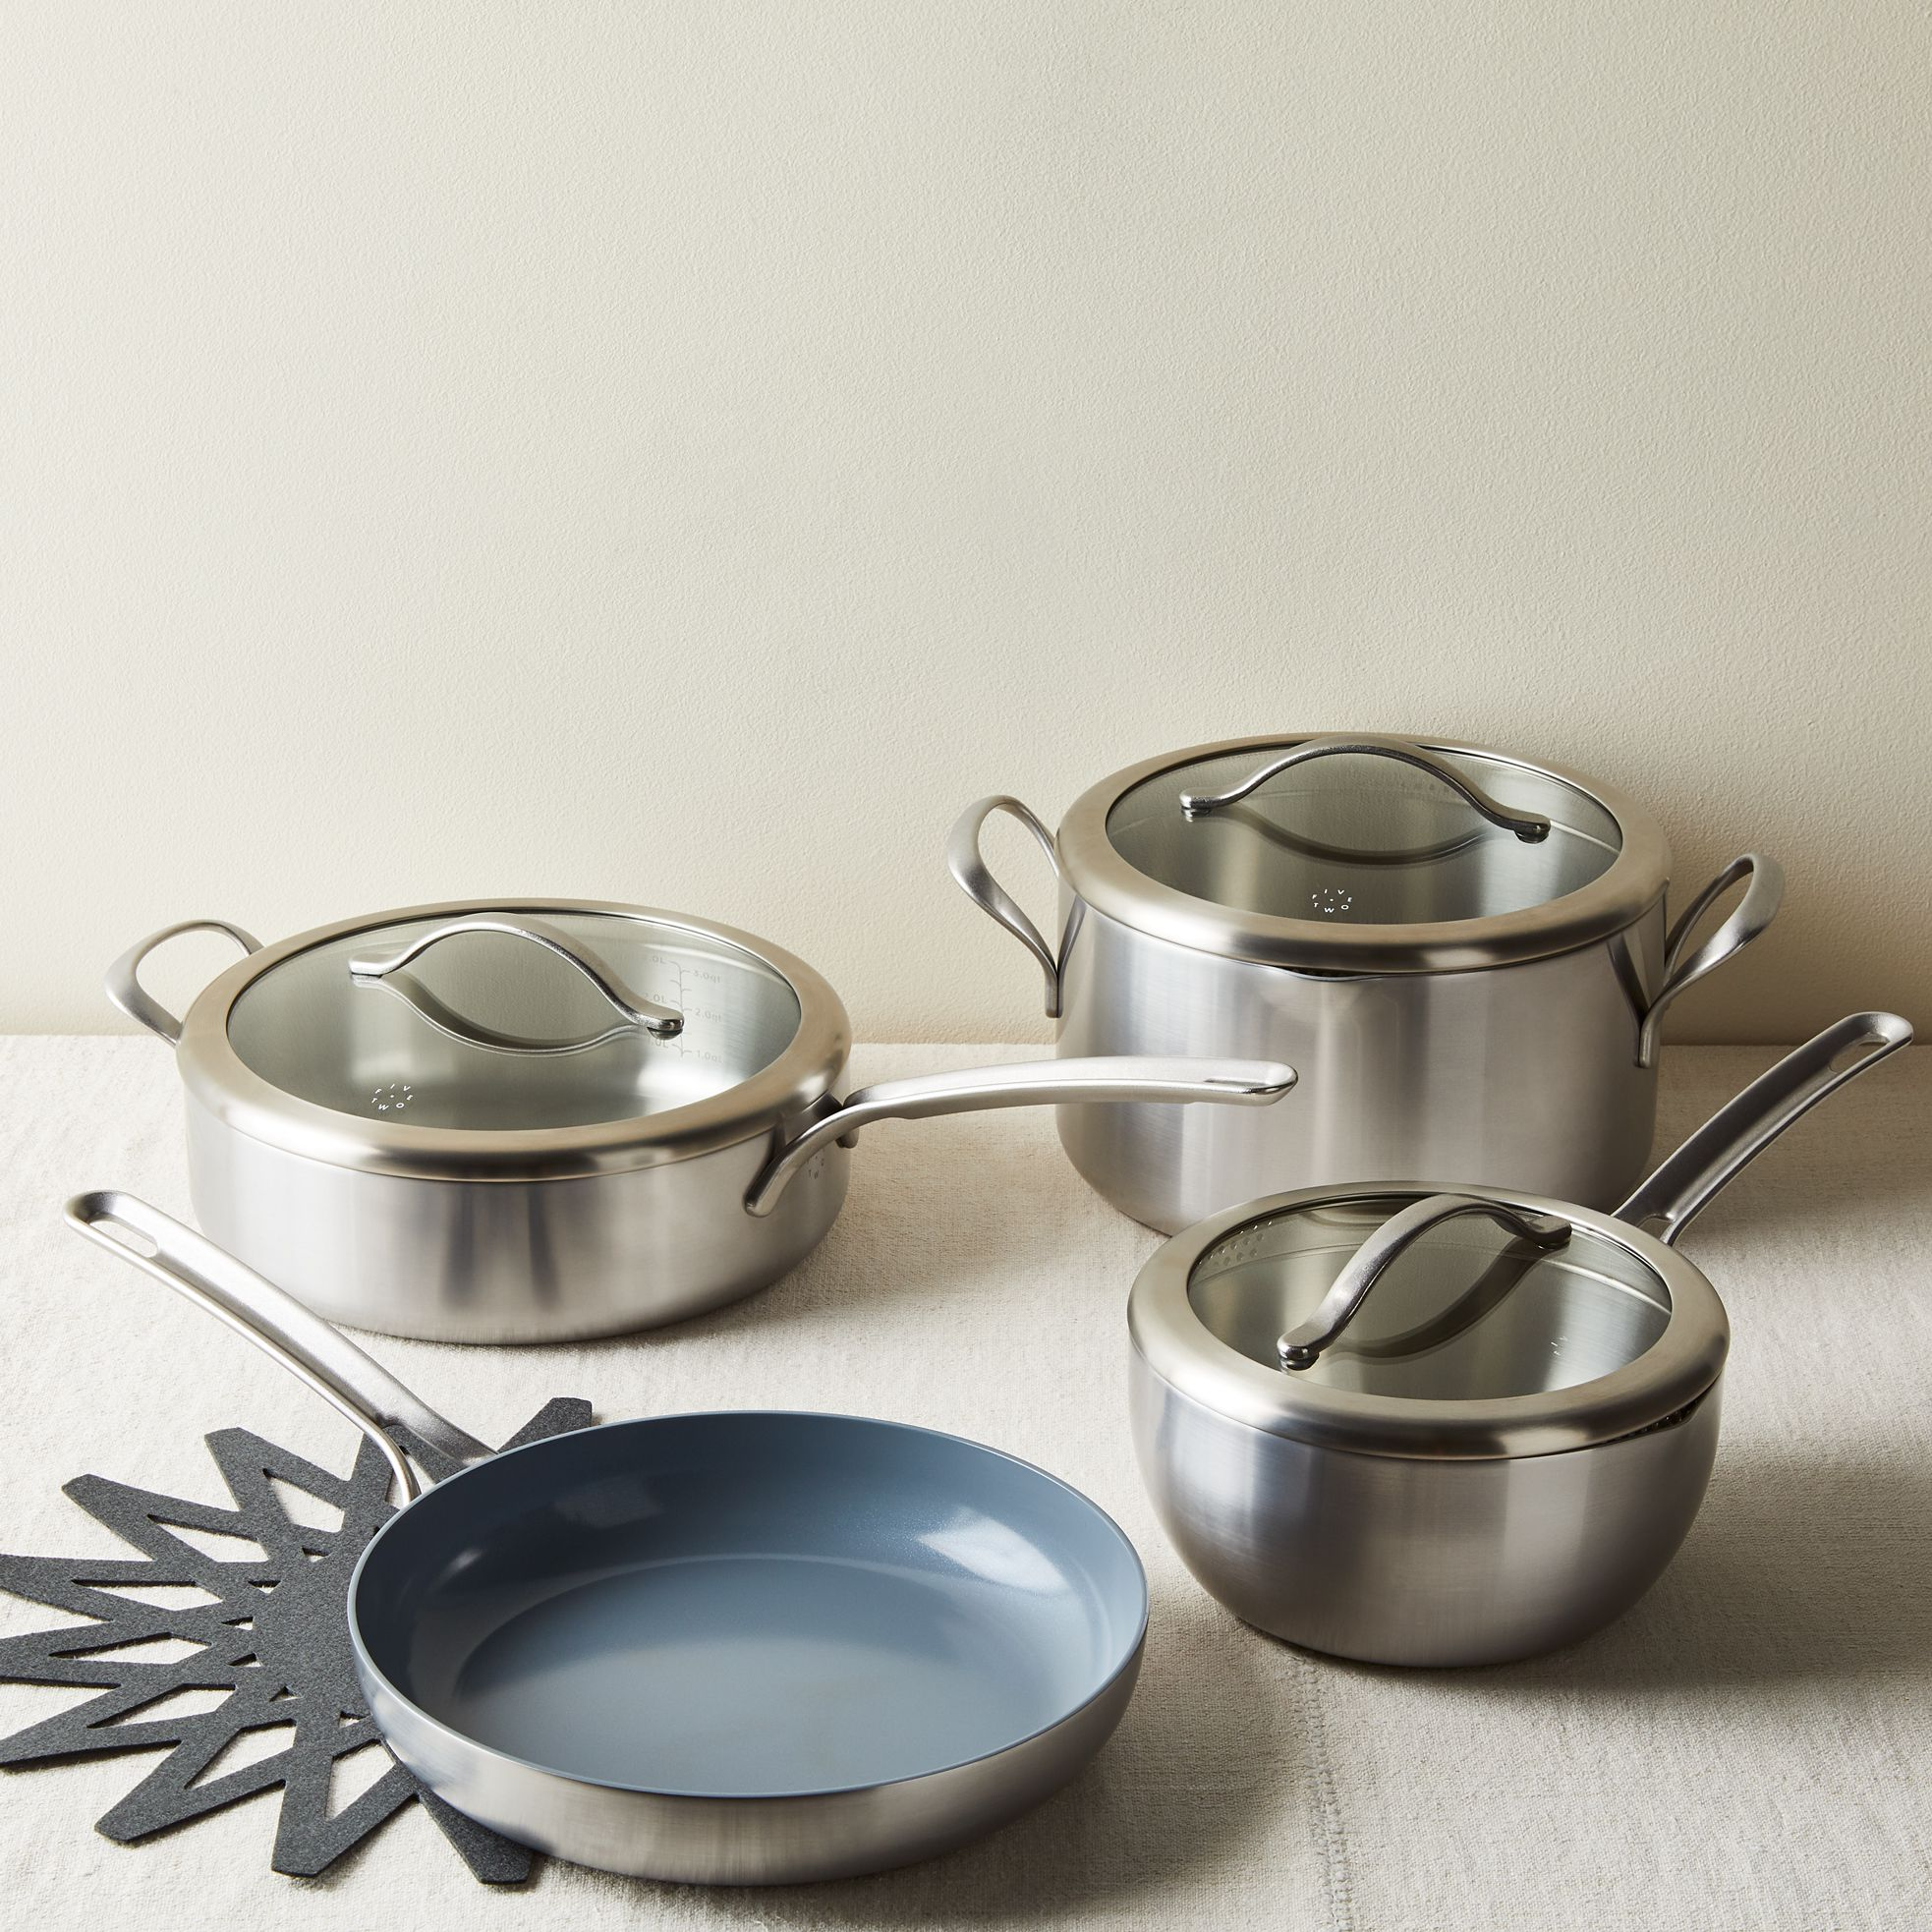 Cookware I want by Byron Pugh